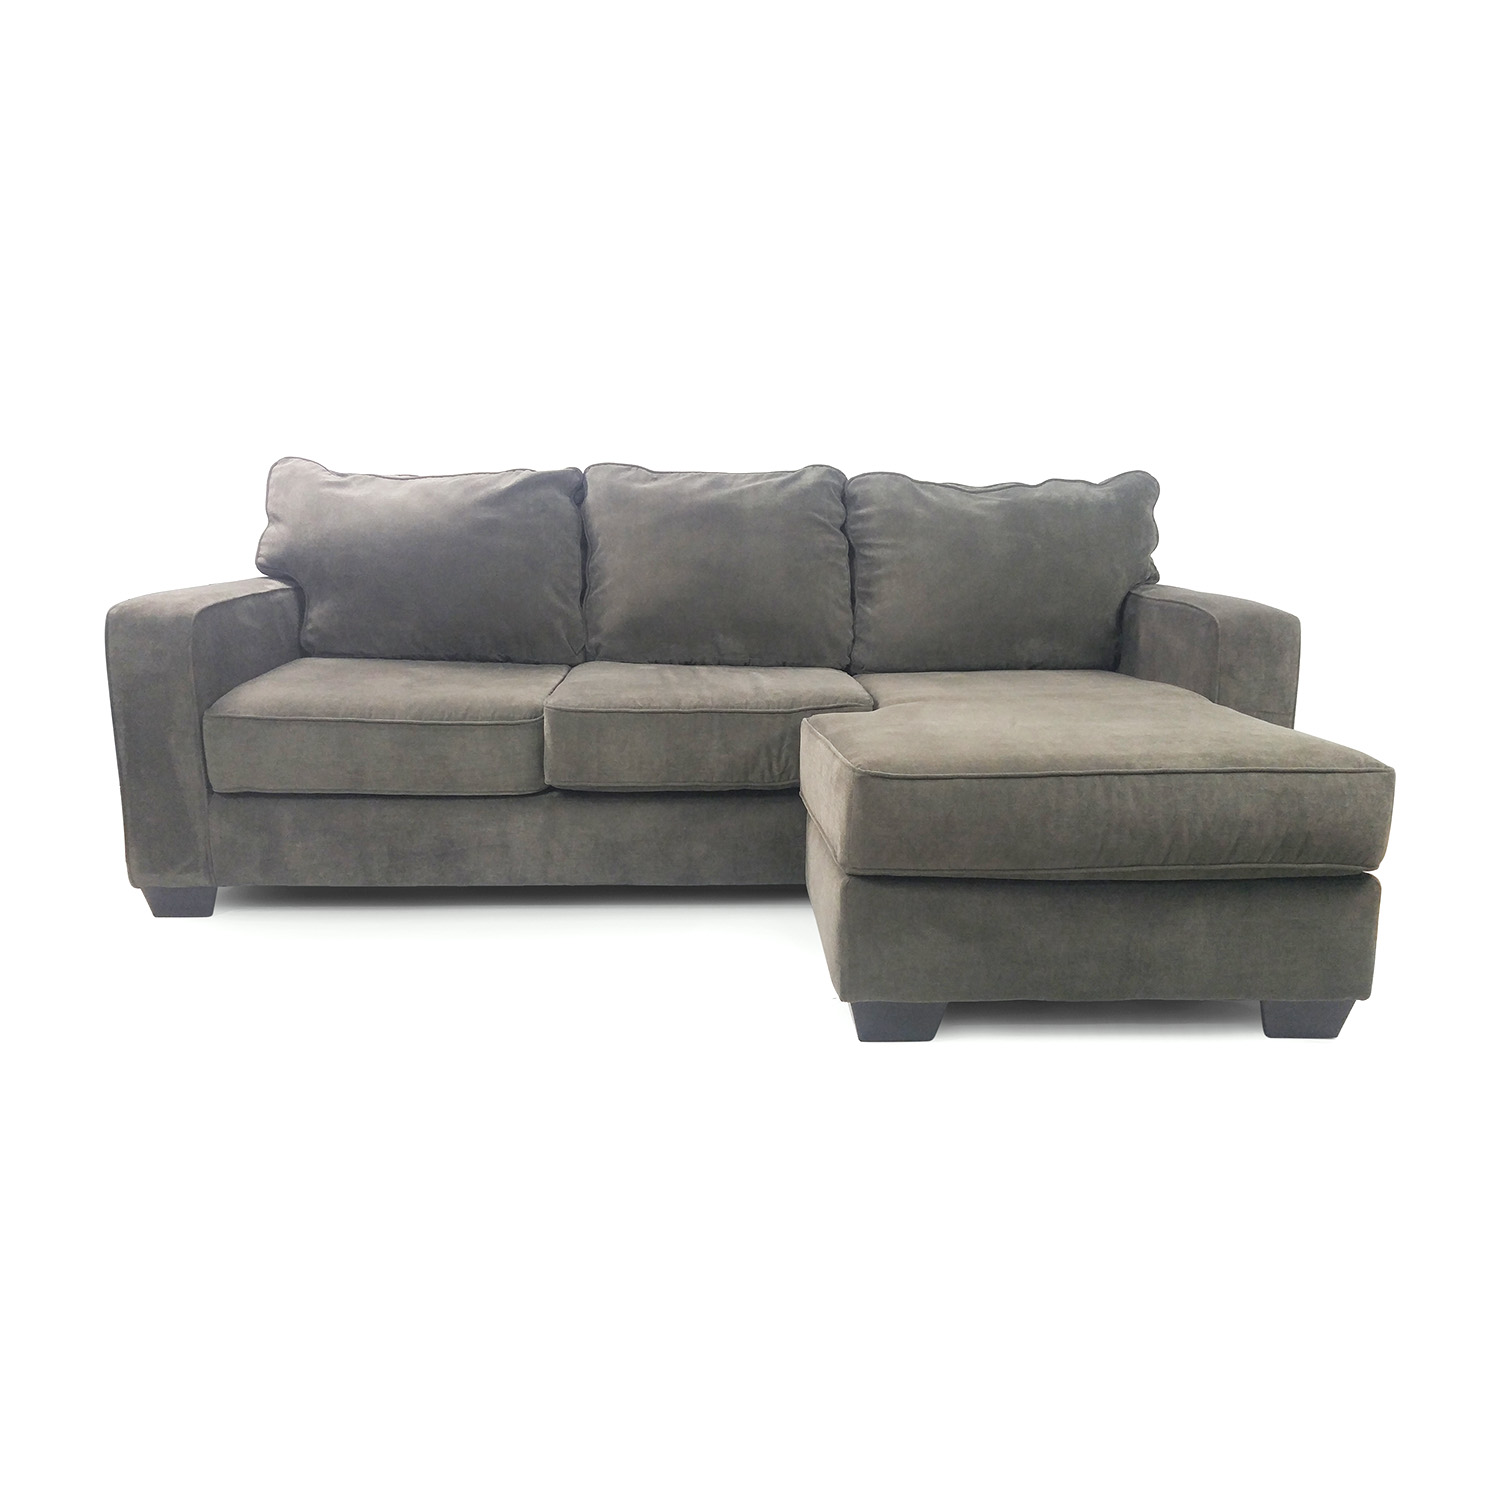 Bo concept chaise coupon code for Ashley chaise lounge sofa